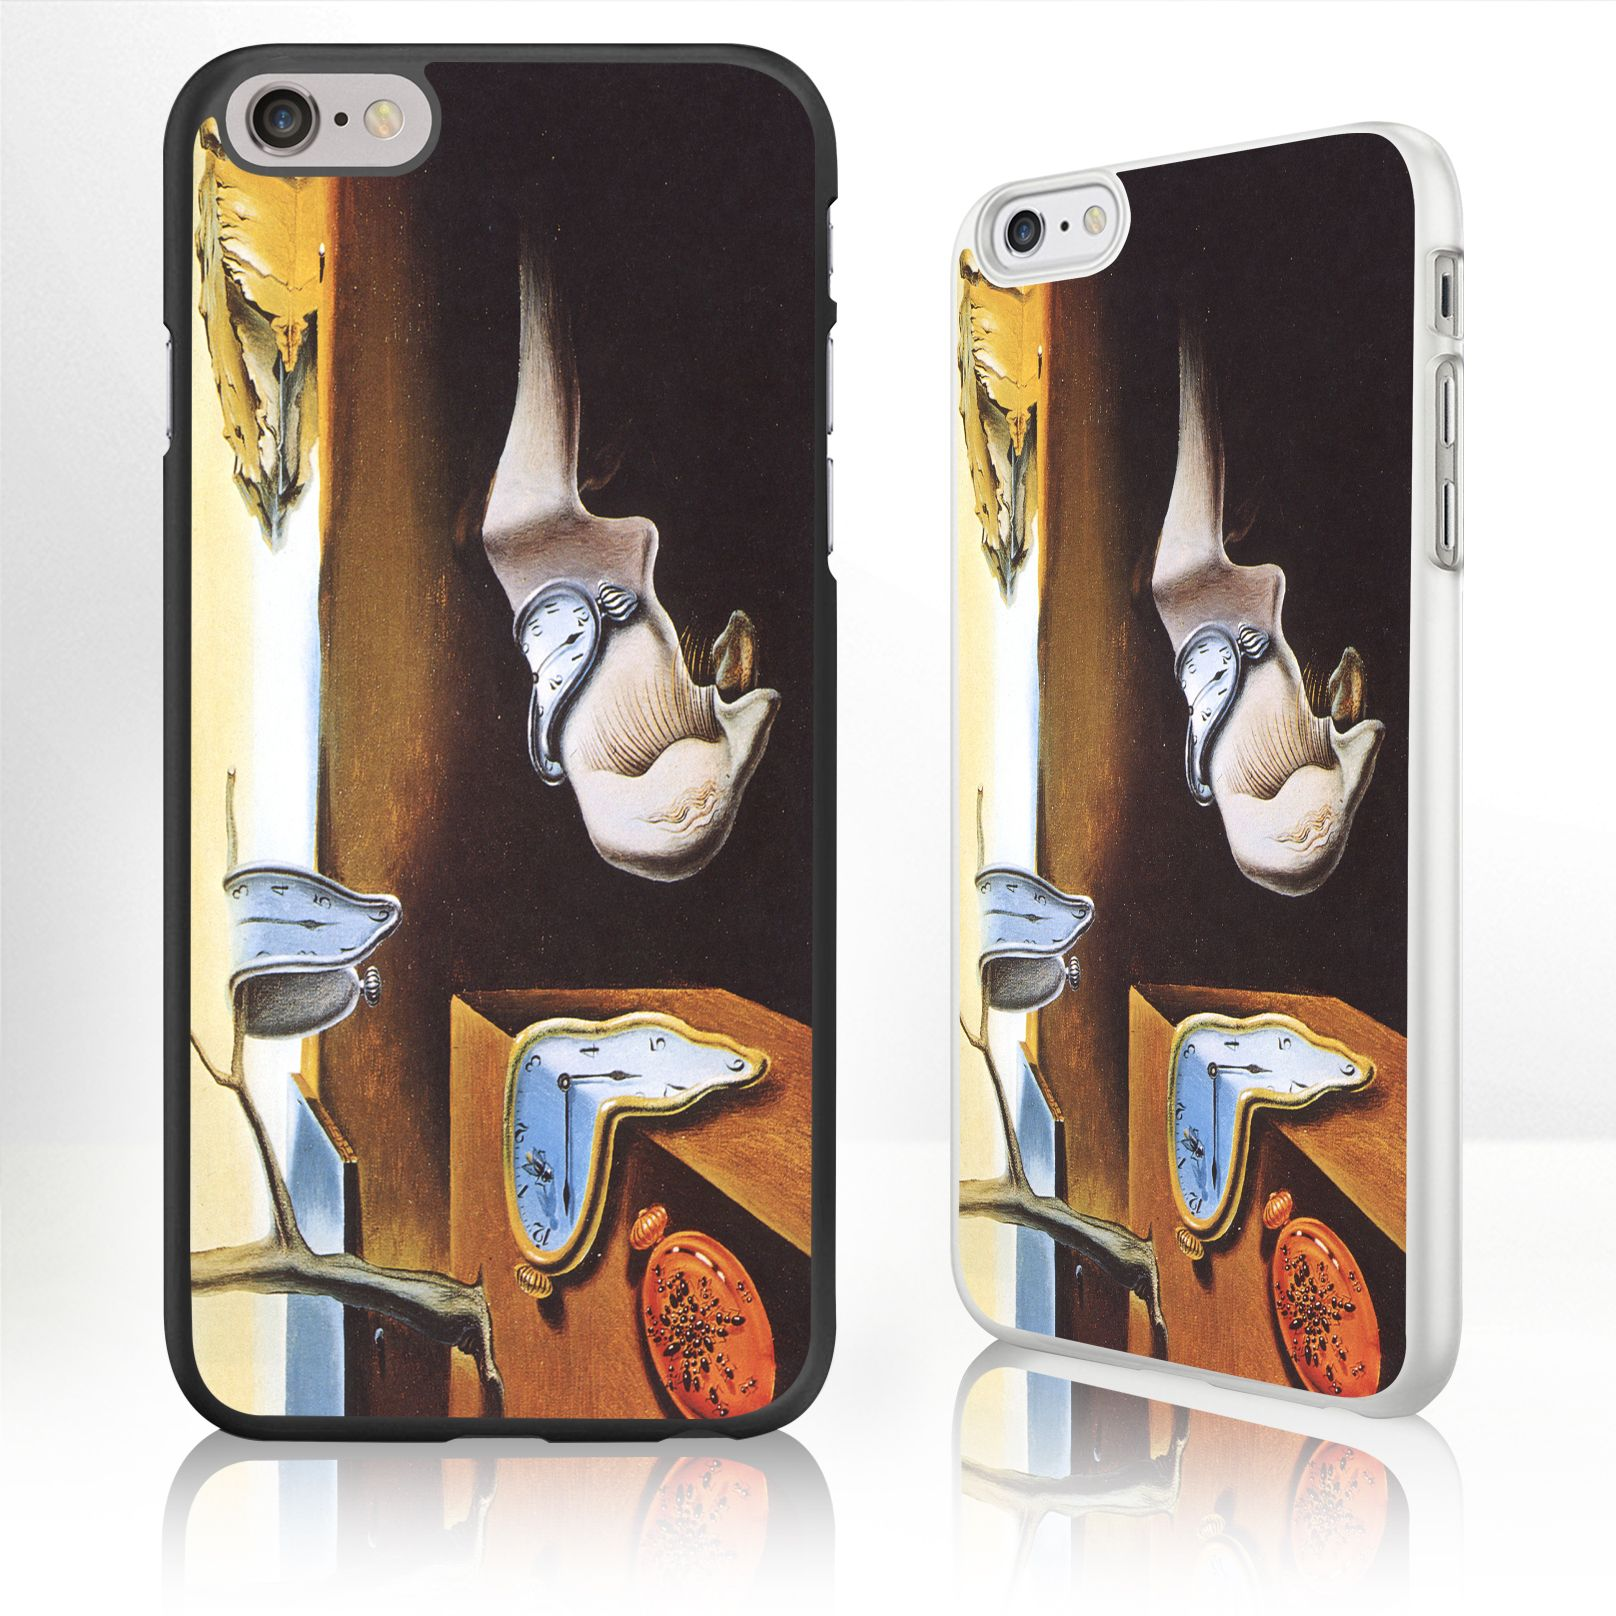 Classic Art Phone Case Cover Iphone Famous Artist Painting 4 4s 5 5s 5c 6 6s 7 8 Ebay Art Phone Cases Classic Art Famous Artists Paintings